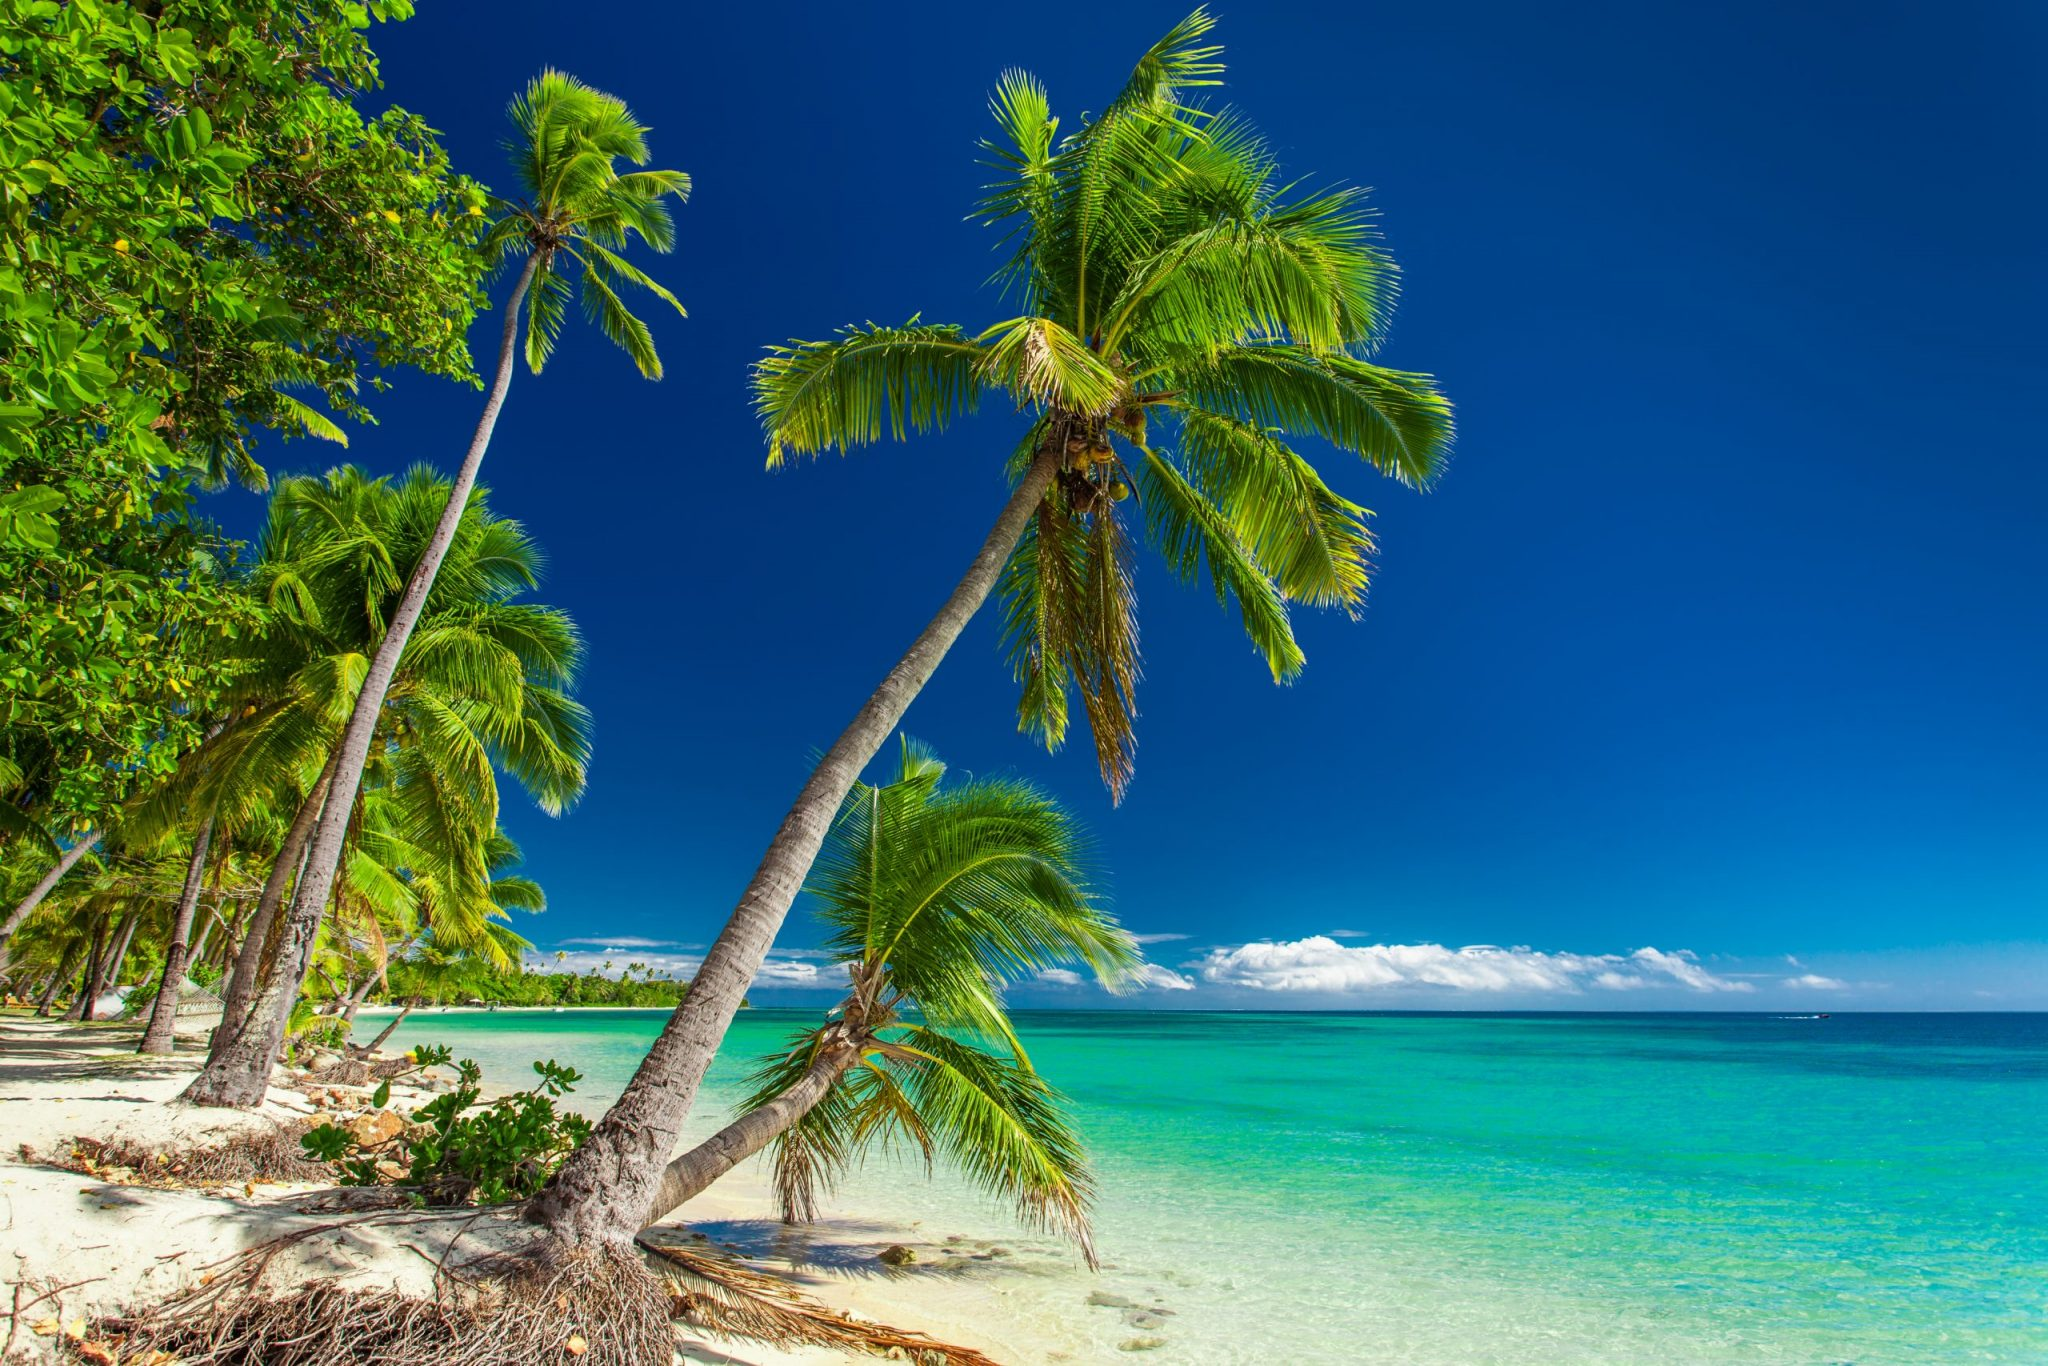 Tropical beach with palm trees on Fiji Islands